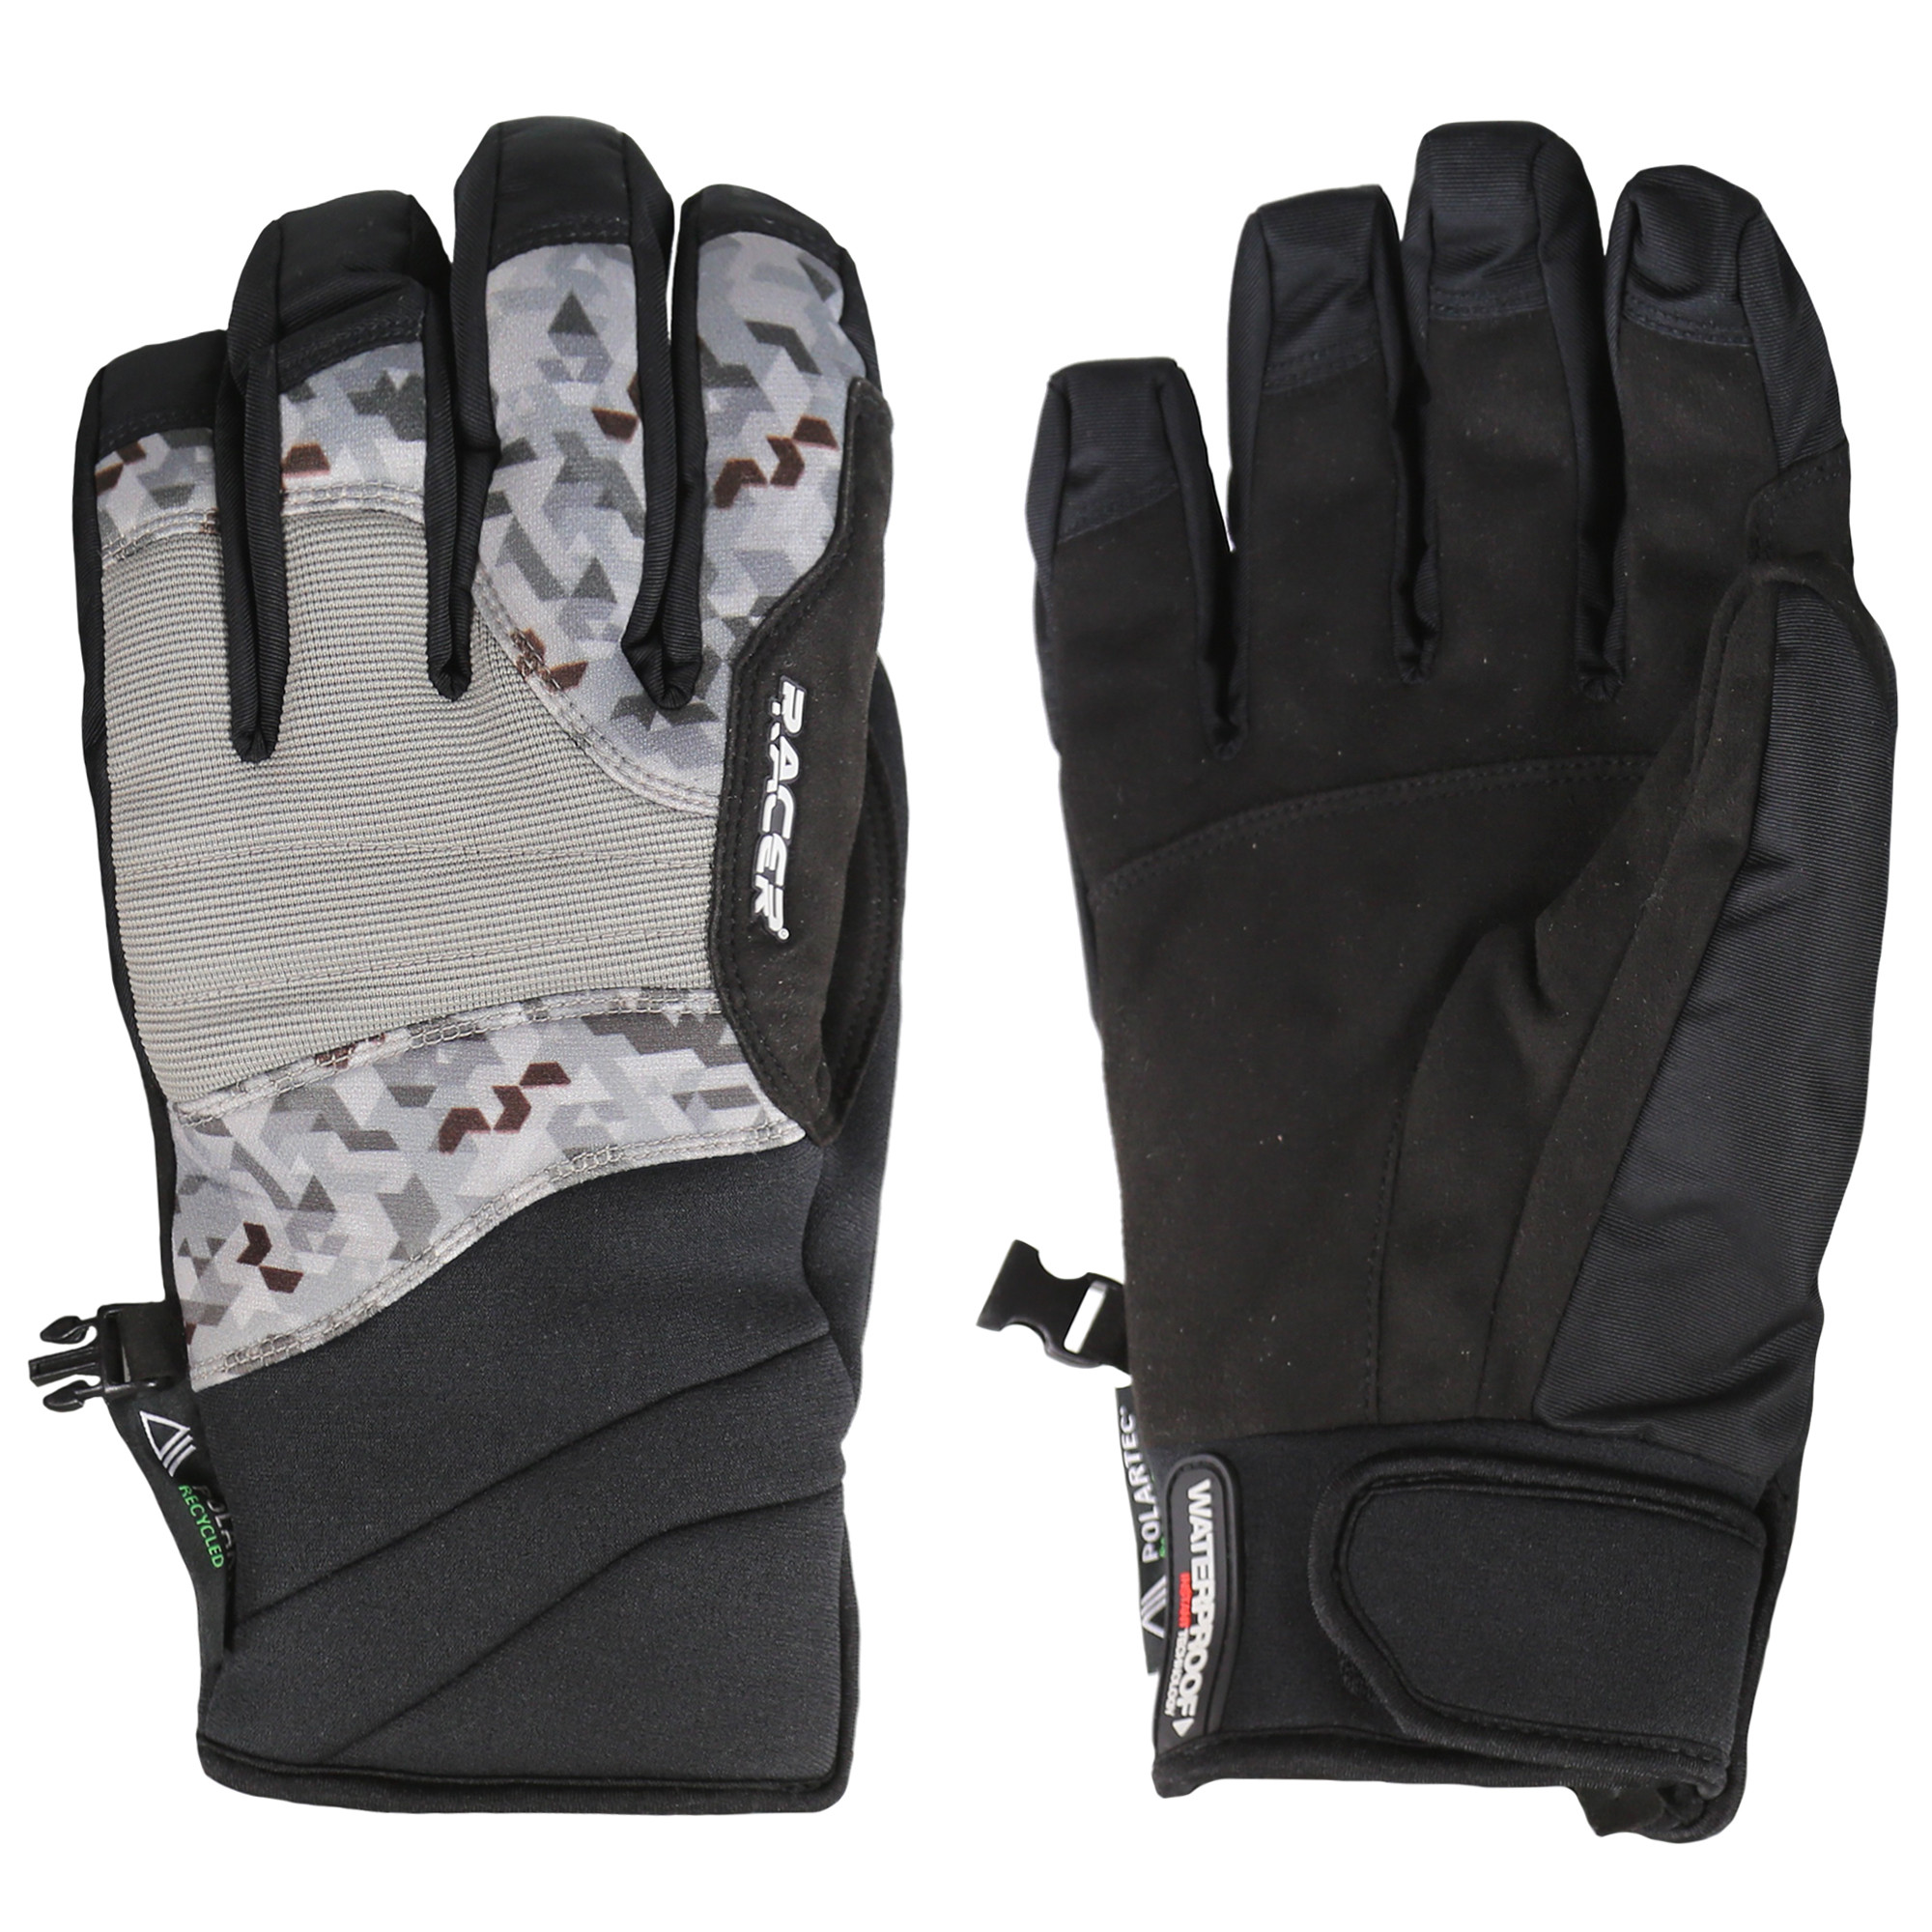 Carter Gants Ski Snowboard Adulte